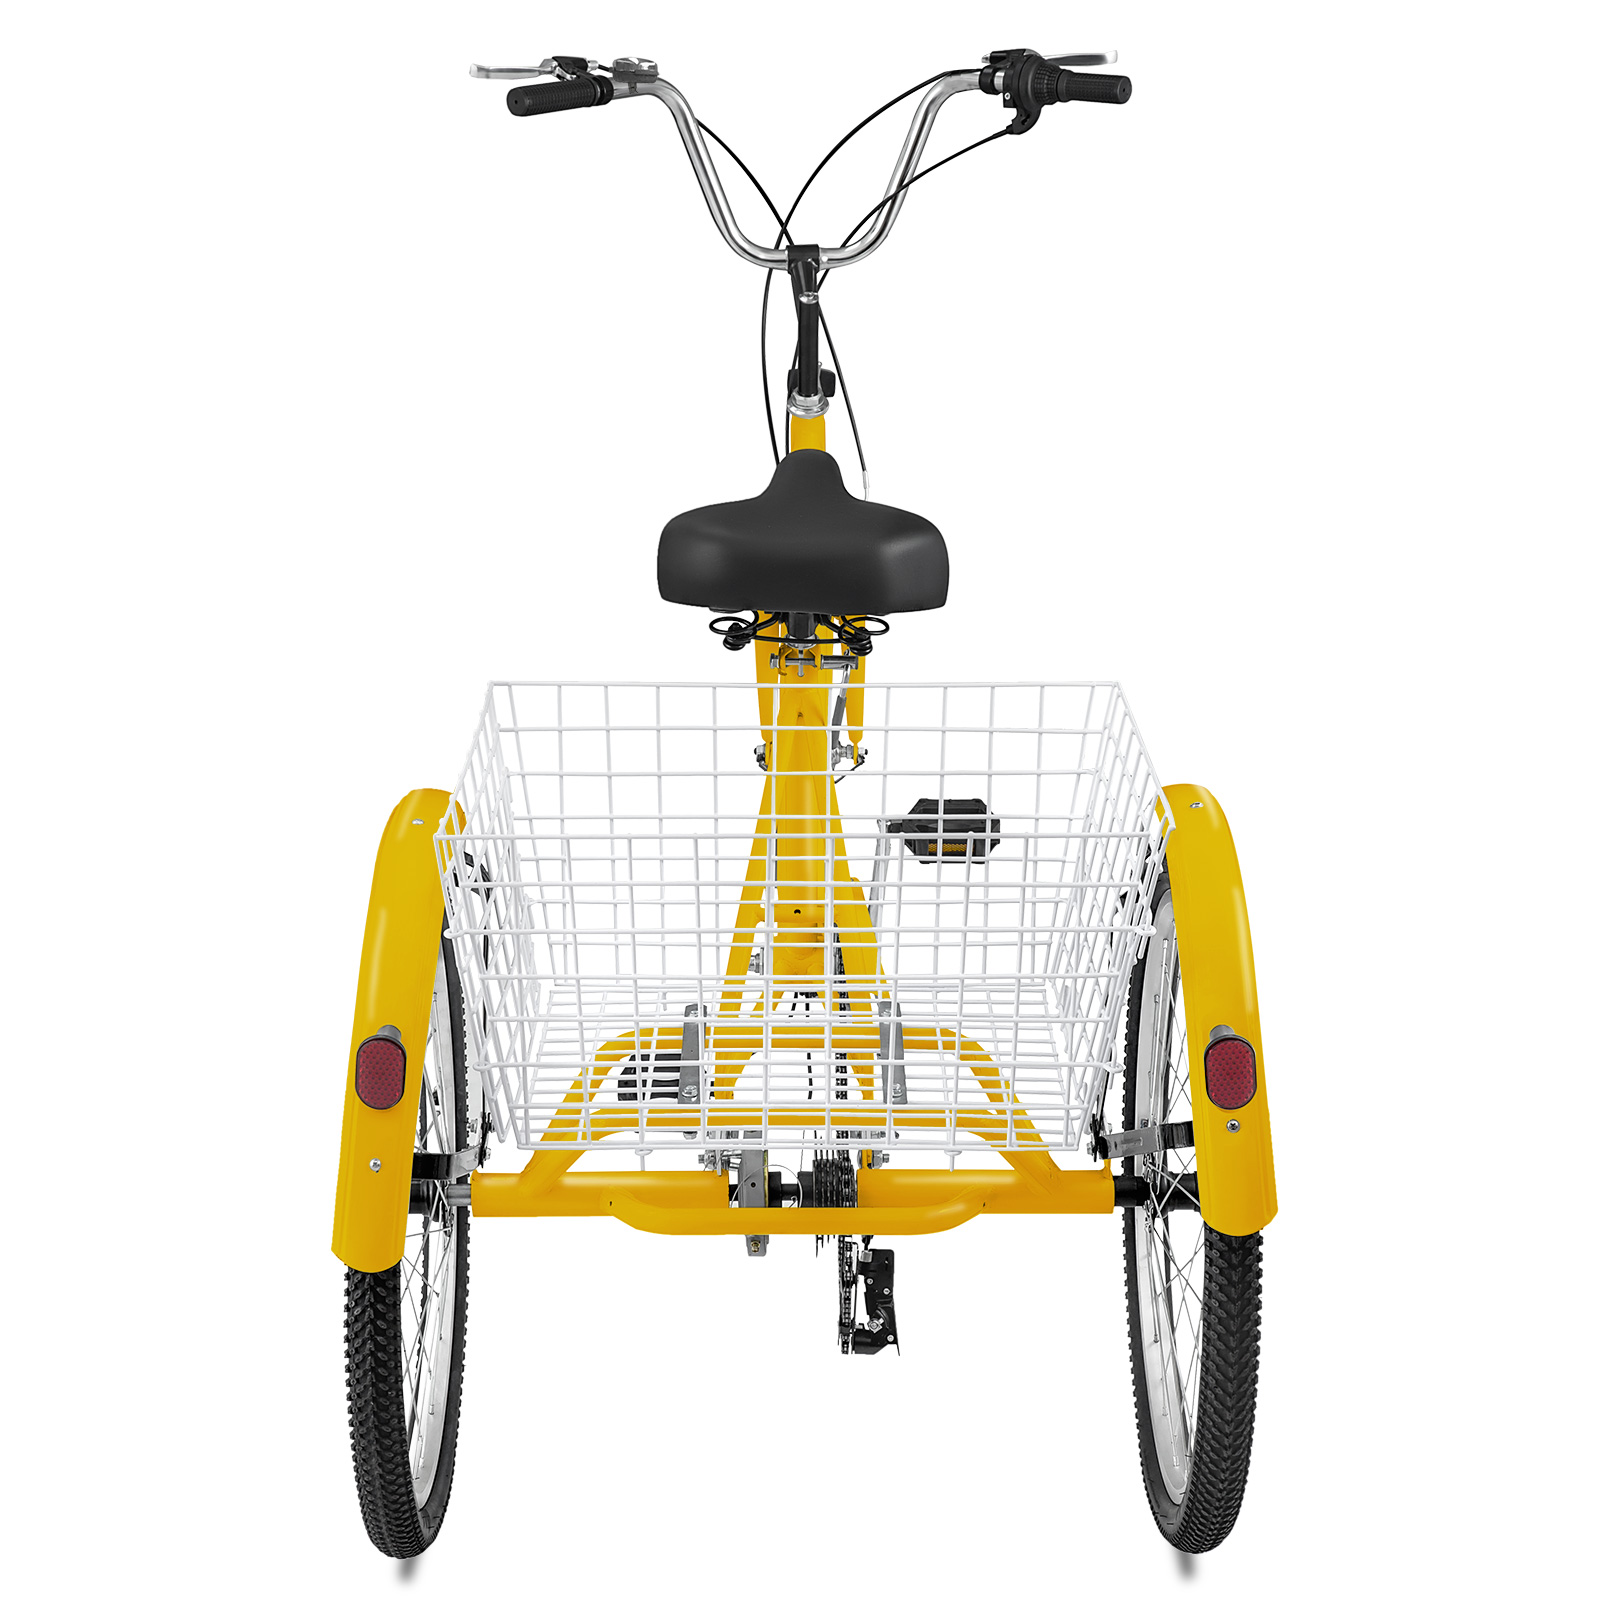 20-24-26-034-Adult-Tricycle-1-7-Speed-3-Wheel-Large-Basket-For-Shopping-Optional thumbnail 84